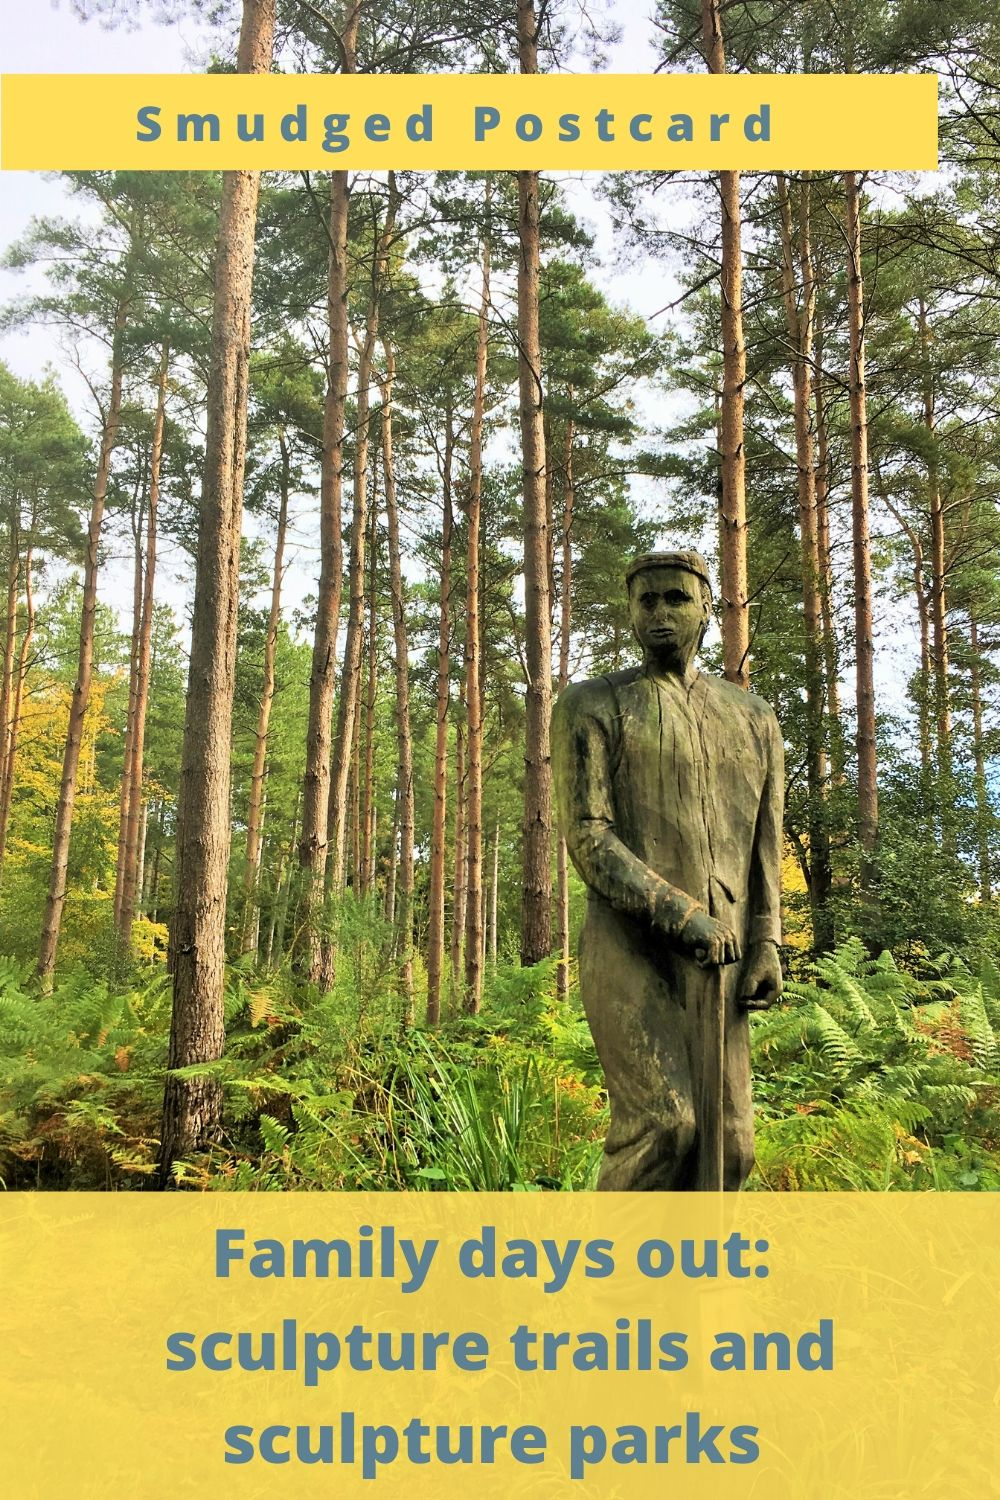 sculpture parks and sculpture trails in the UK